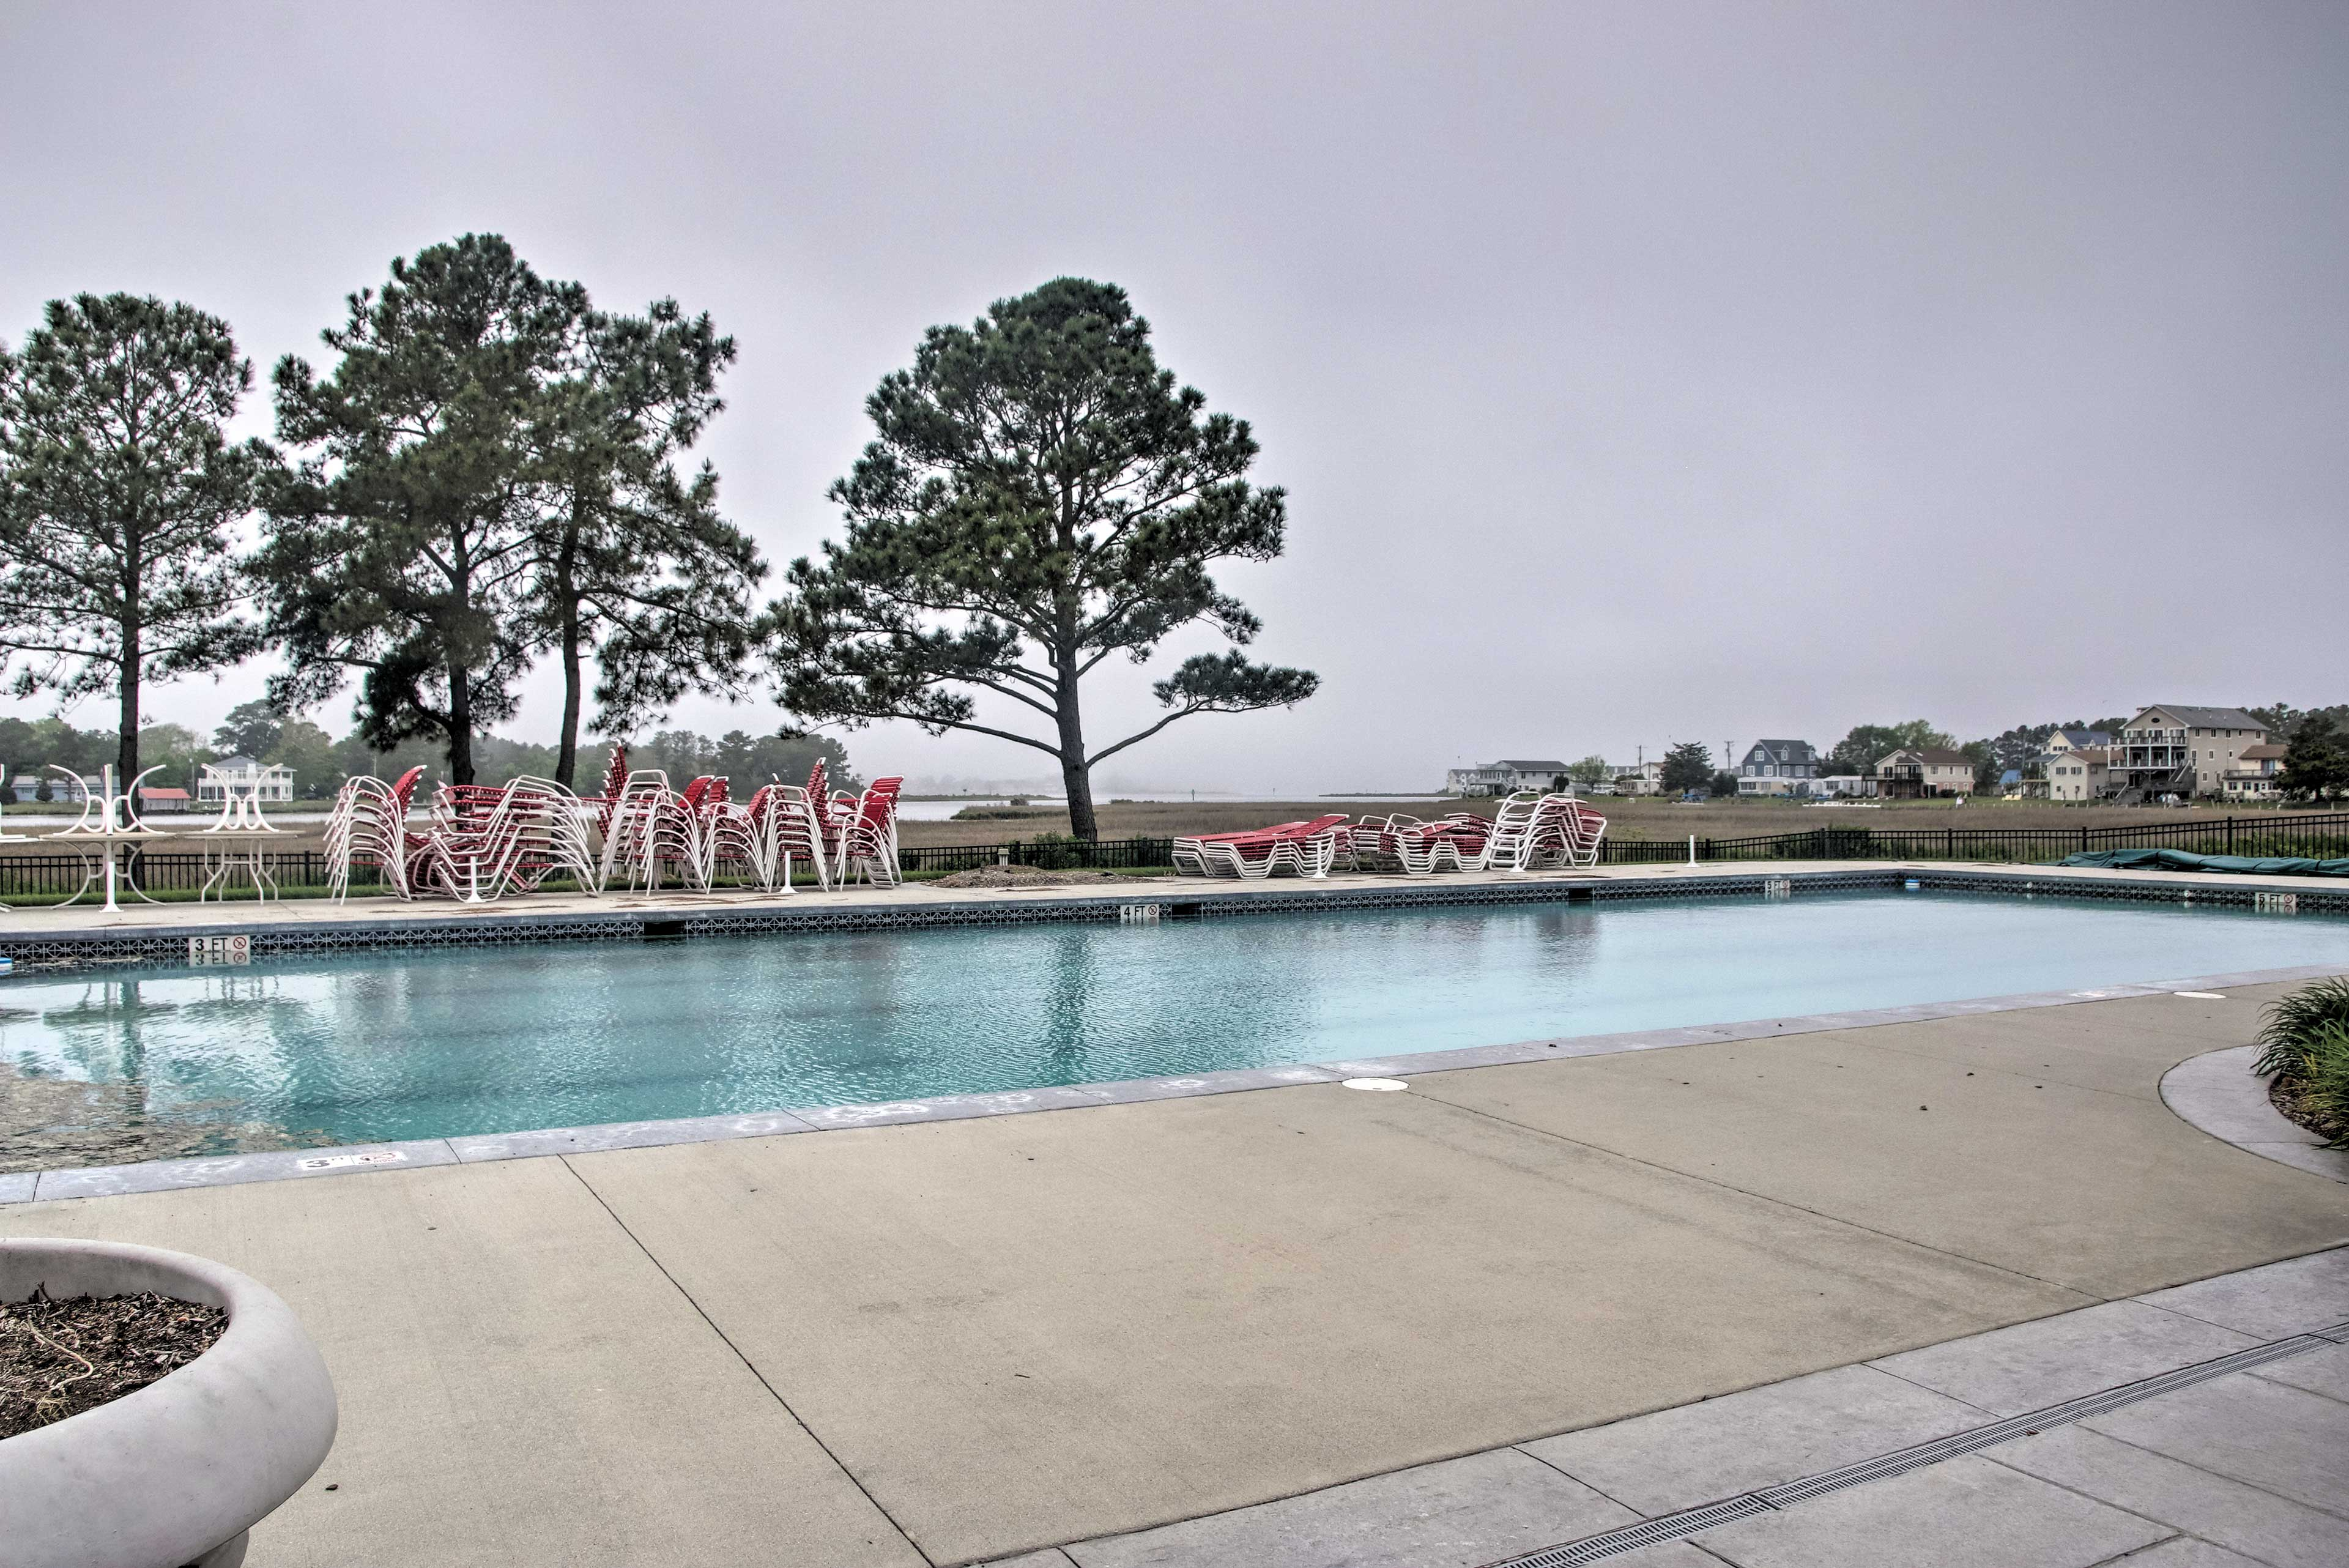 On sunny days, take advantage of the outdoor pool!